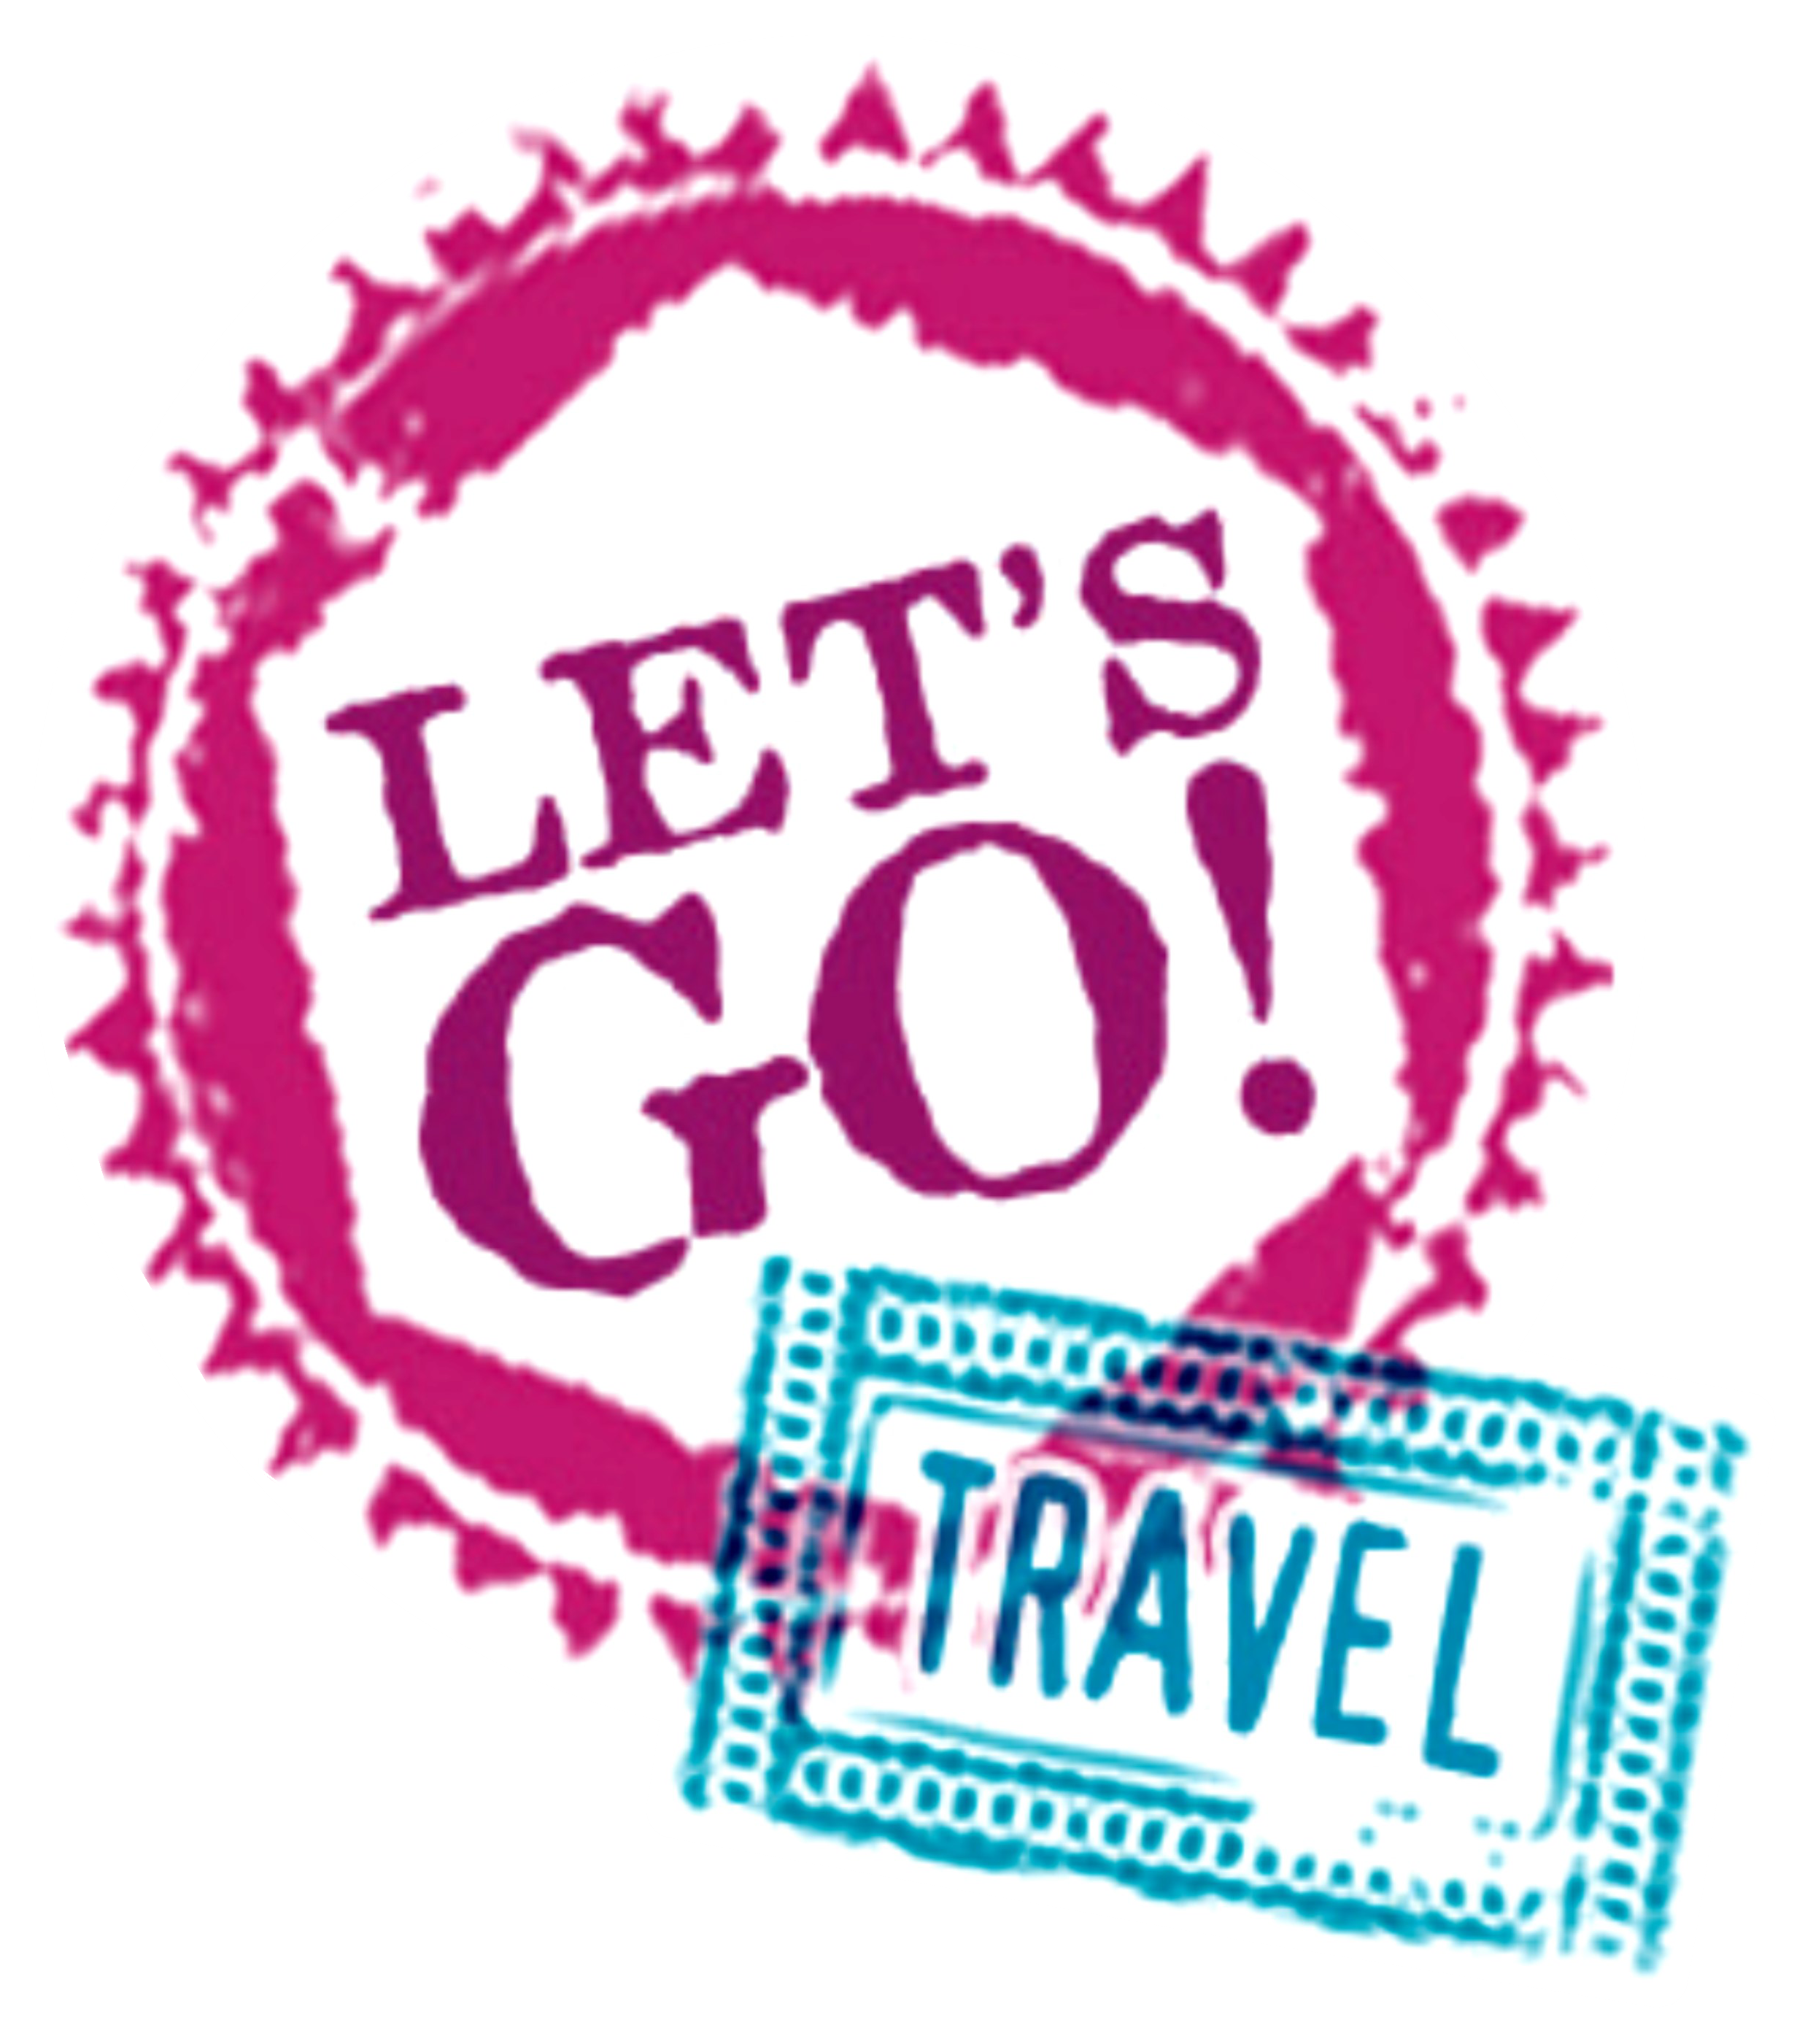 Let's Go! Travel